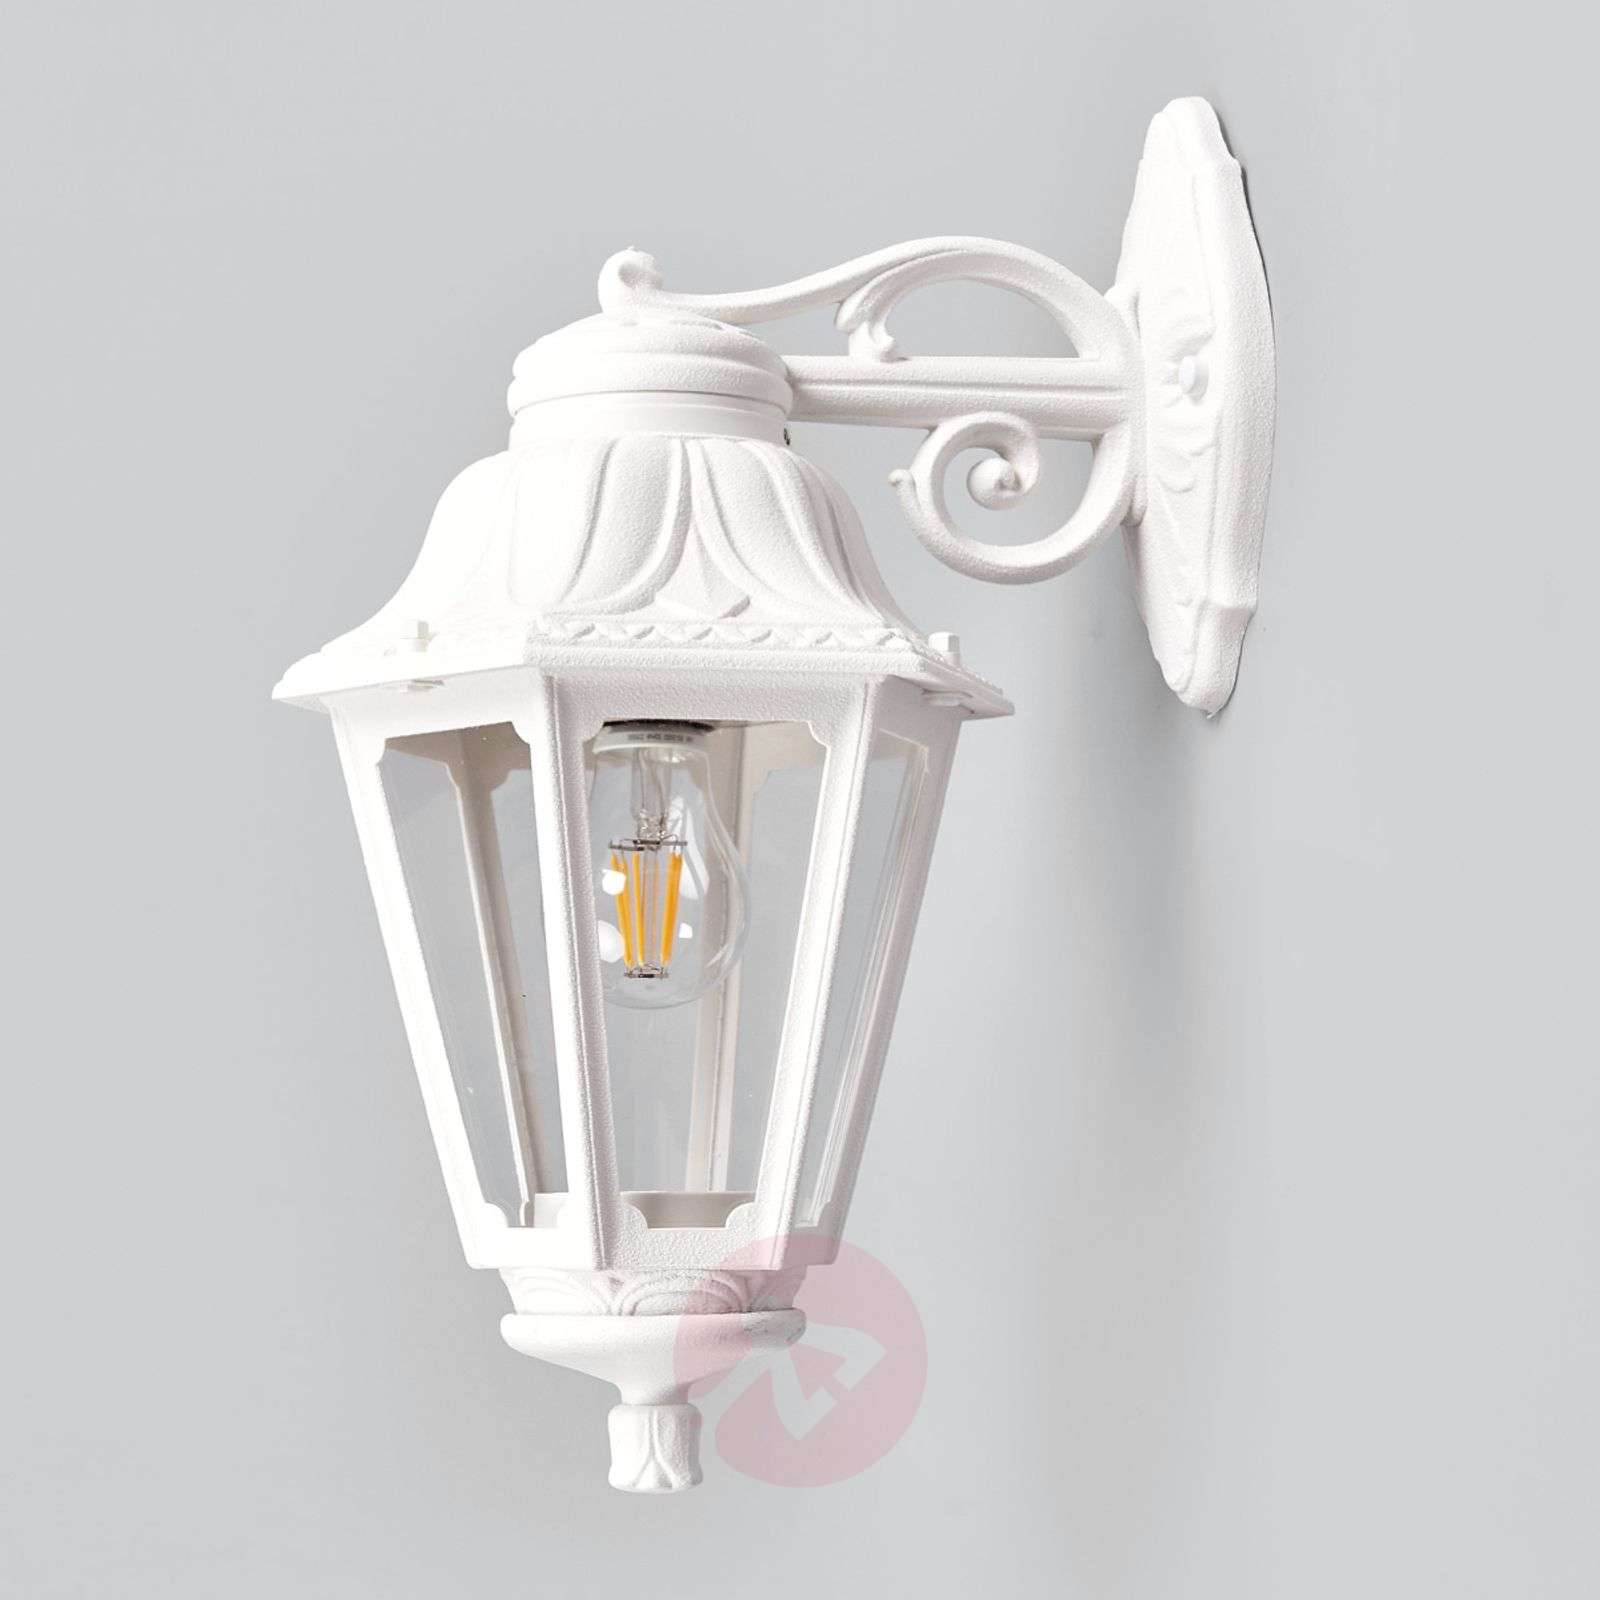 LED outdoor wall light Bisso Anna, lantern down Lights.co.uk